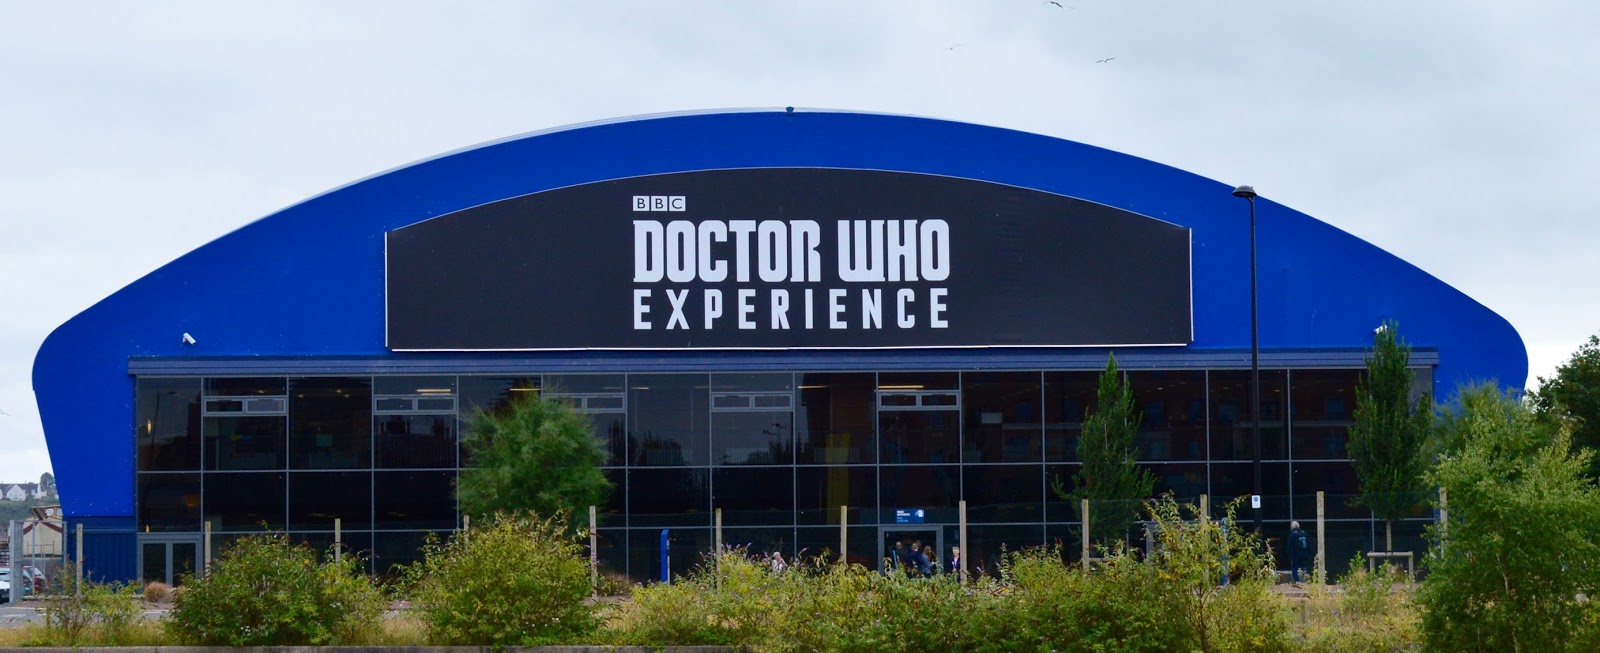 Doctor Who Experience Cardiff, Why you should visit Cardiff Bay Beach and The Doctor Who ...